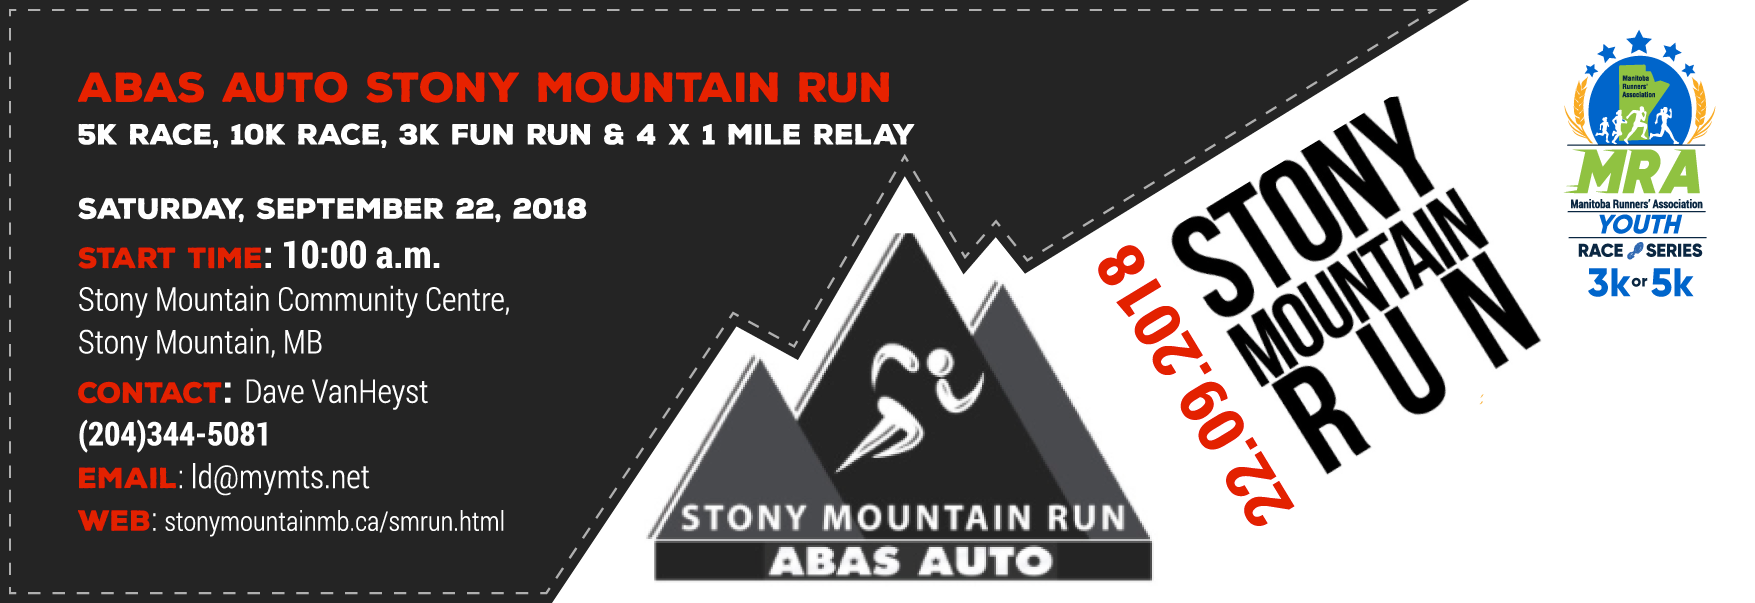 http://mraweb.ca/events/abas-auto-stony-mountain-run/